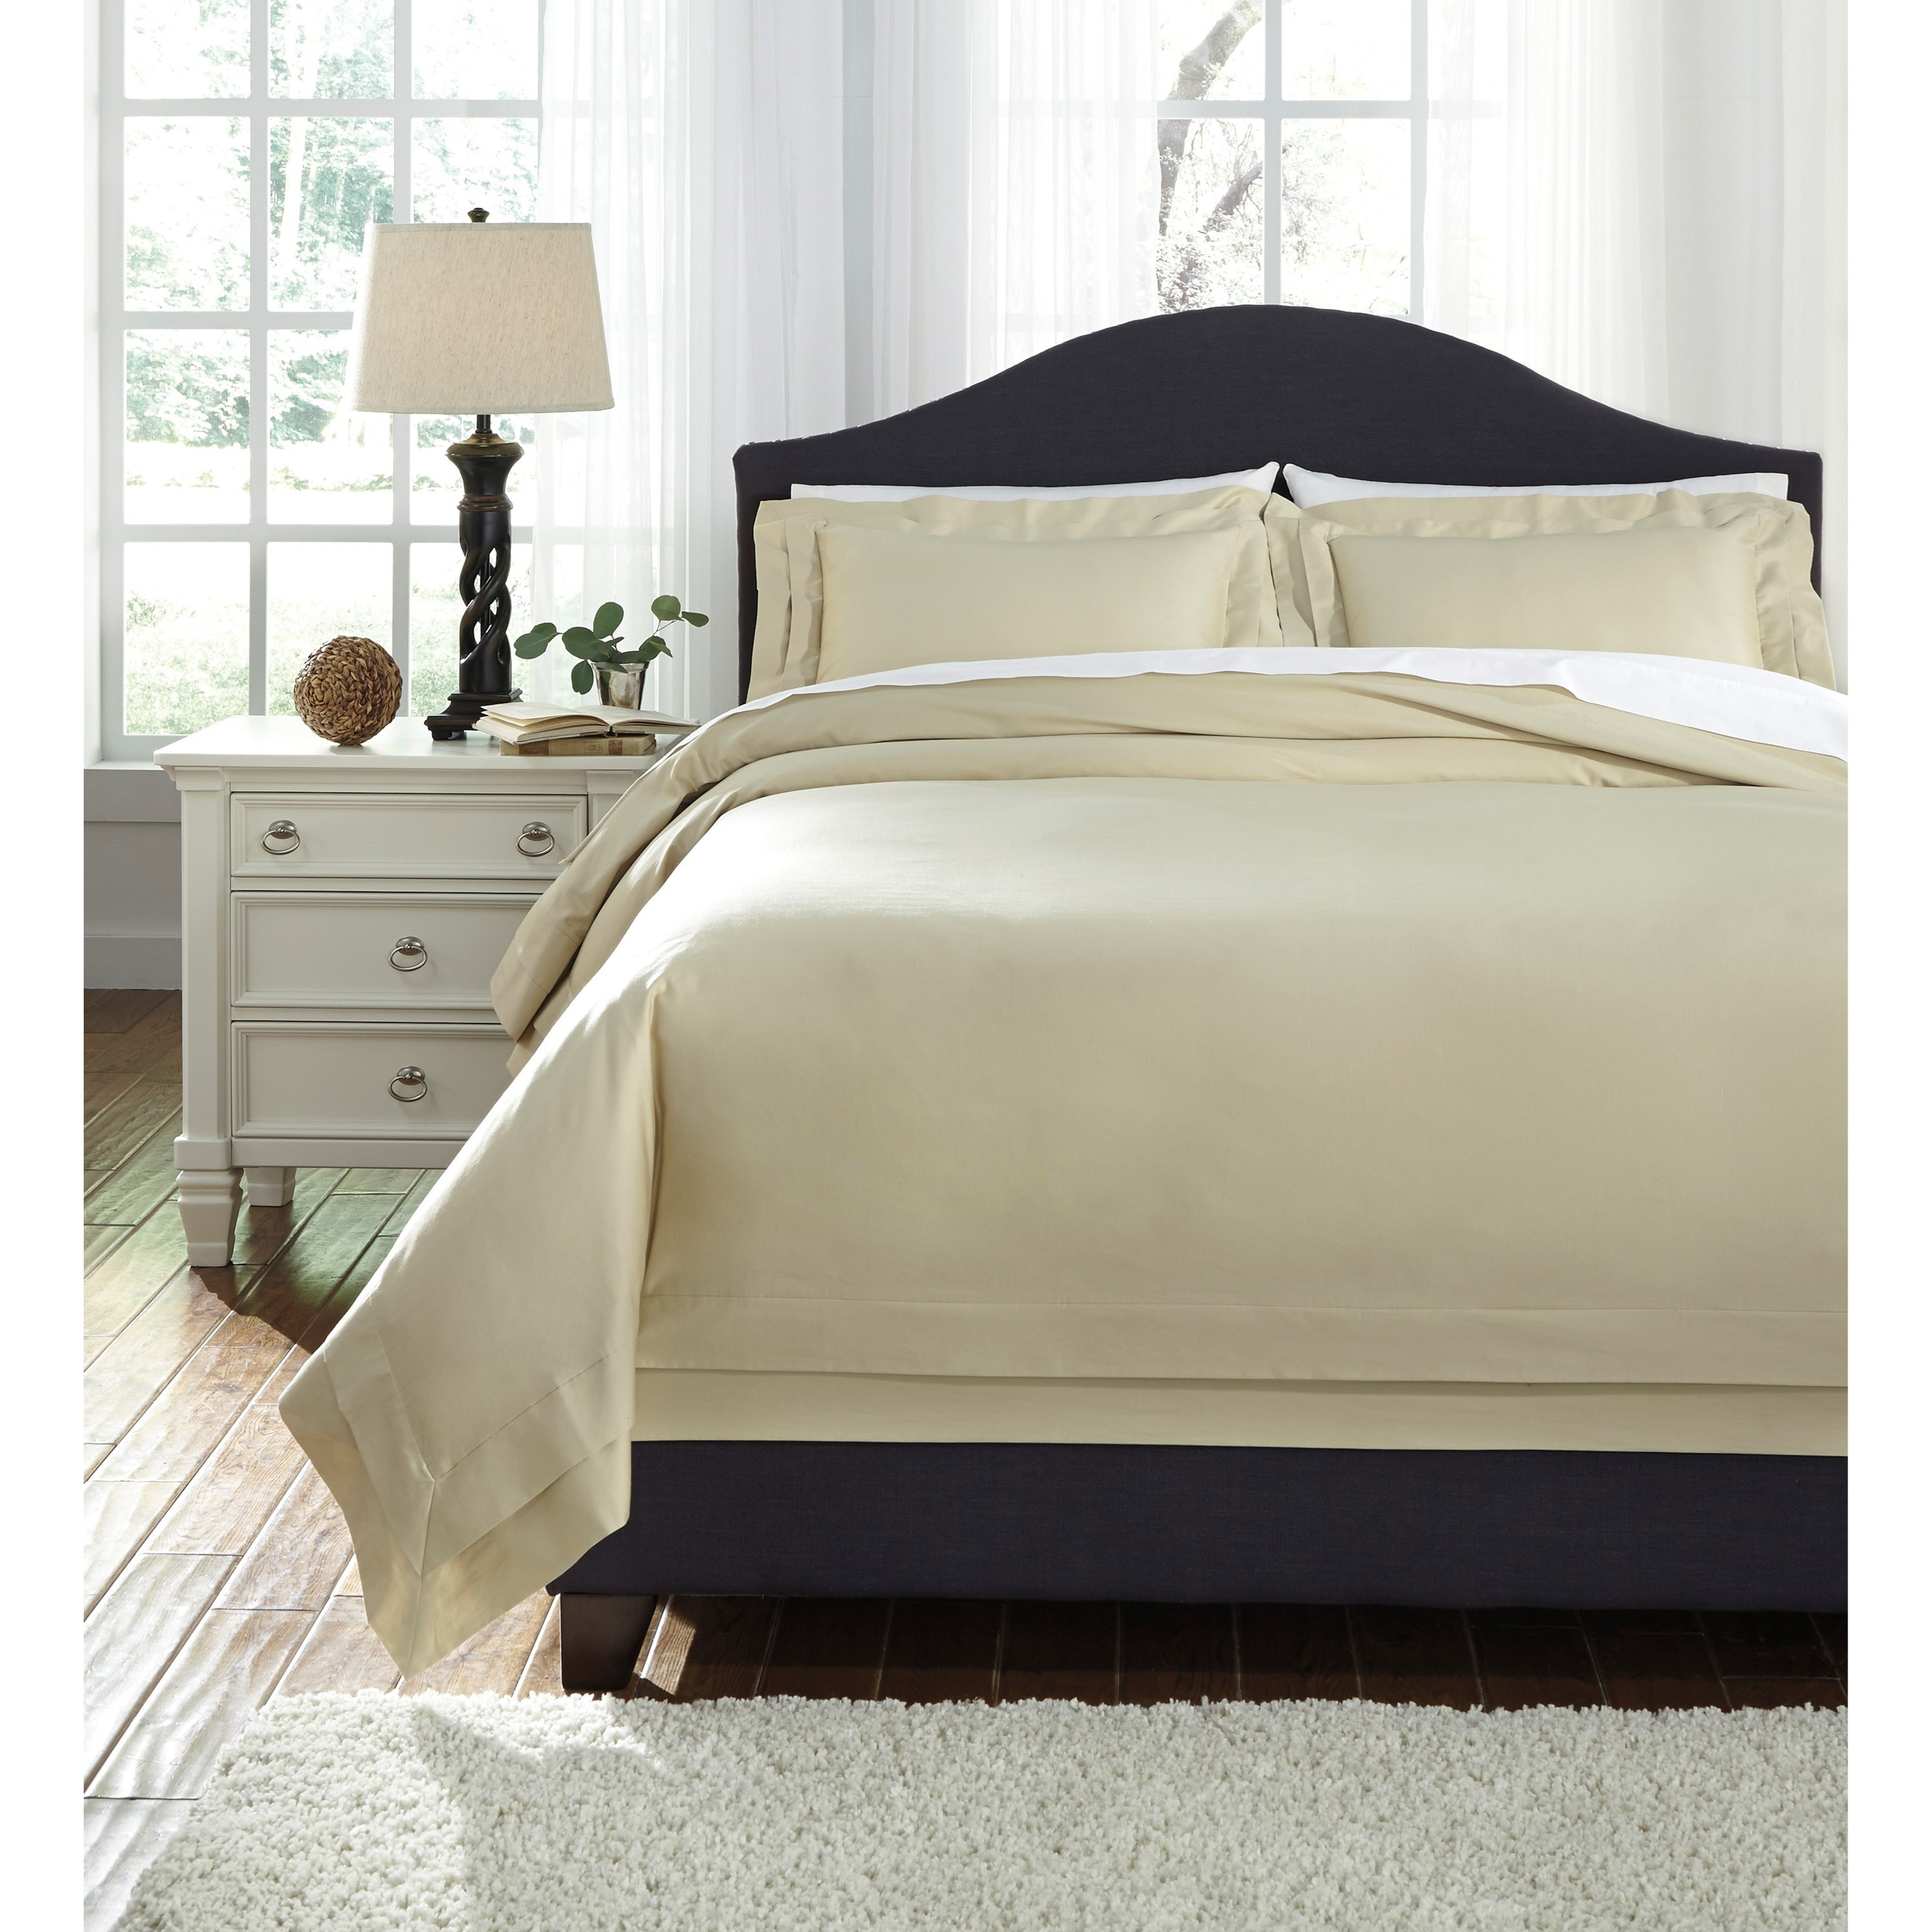 Bedding Sets Queen Chamness Sand Duvet Cover Set by Signature Design by Ashley at Lapeer Furniture & Mattress Center